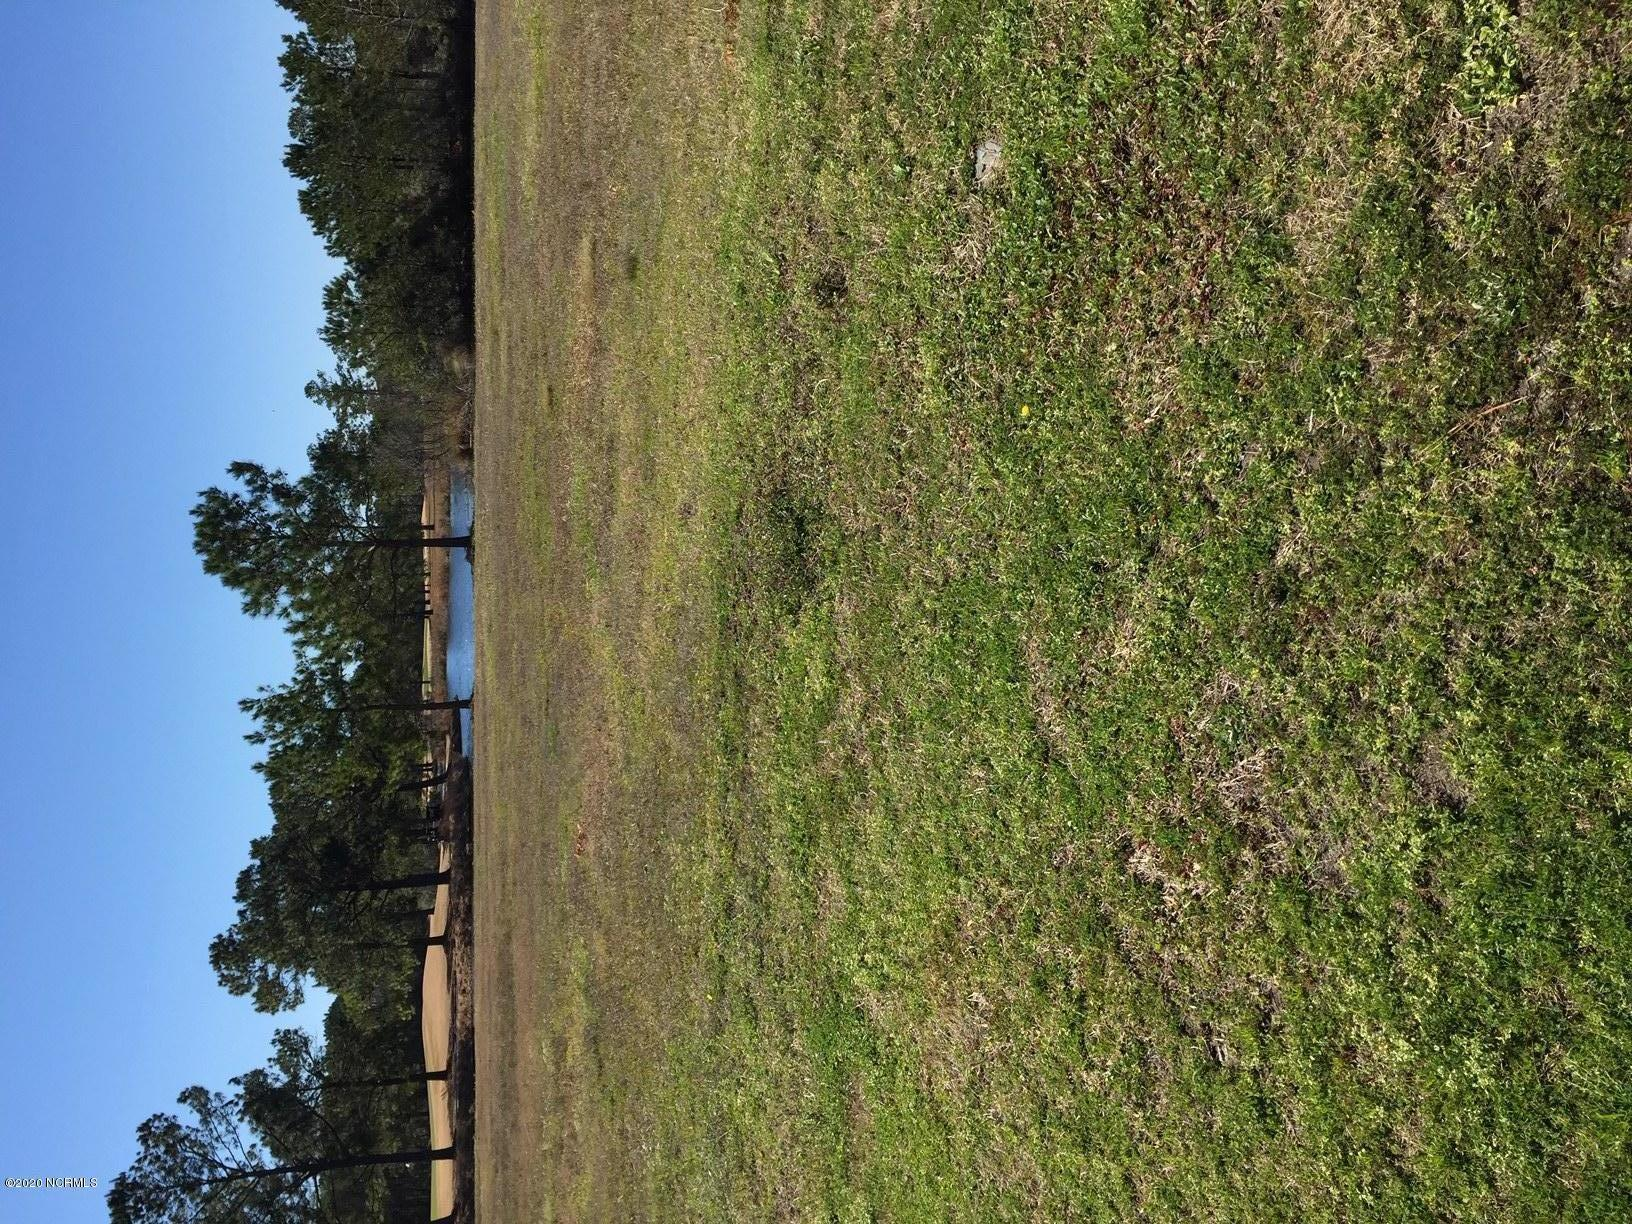 Lot 67 Crail Court, Sunset Beach, North Carolina 28468, ,Undeveloped,For sale,Crail Court,100207403